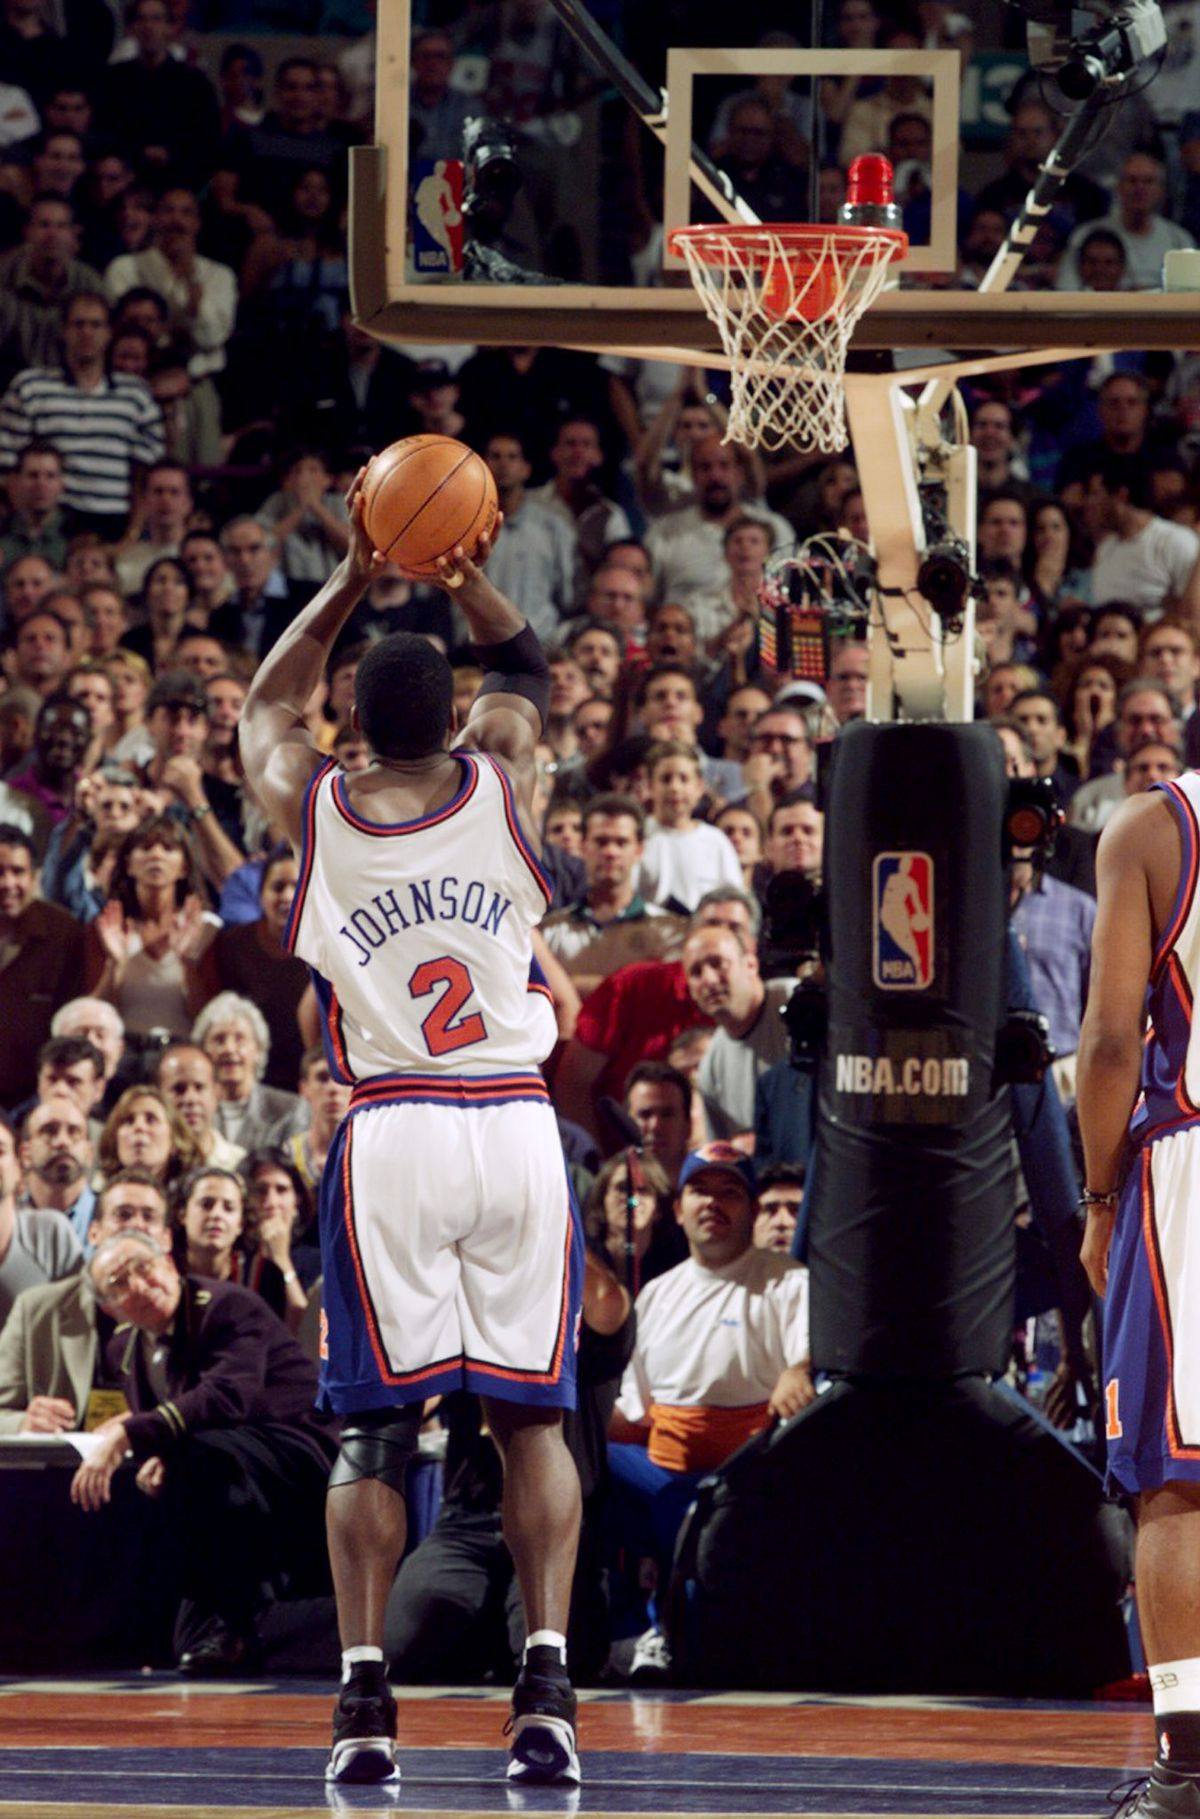 New York Knicks' Larry Johnson sinks a 3-pointer to tie the